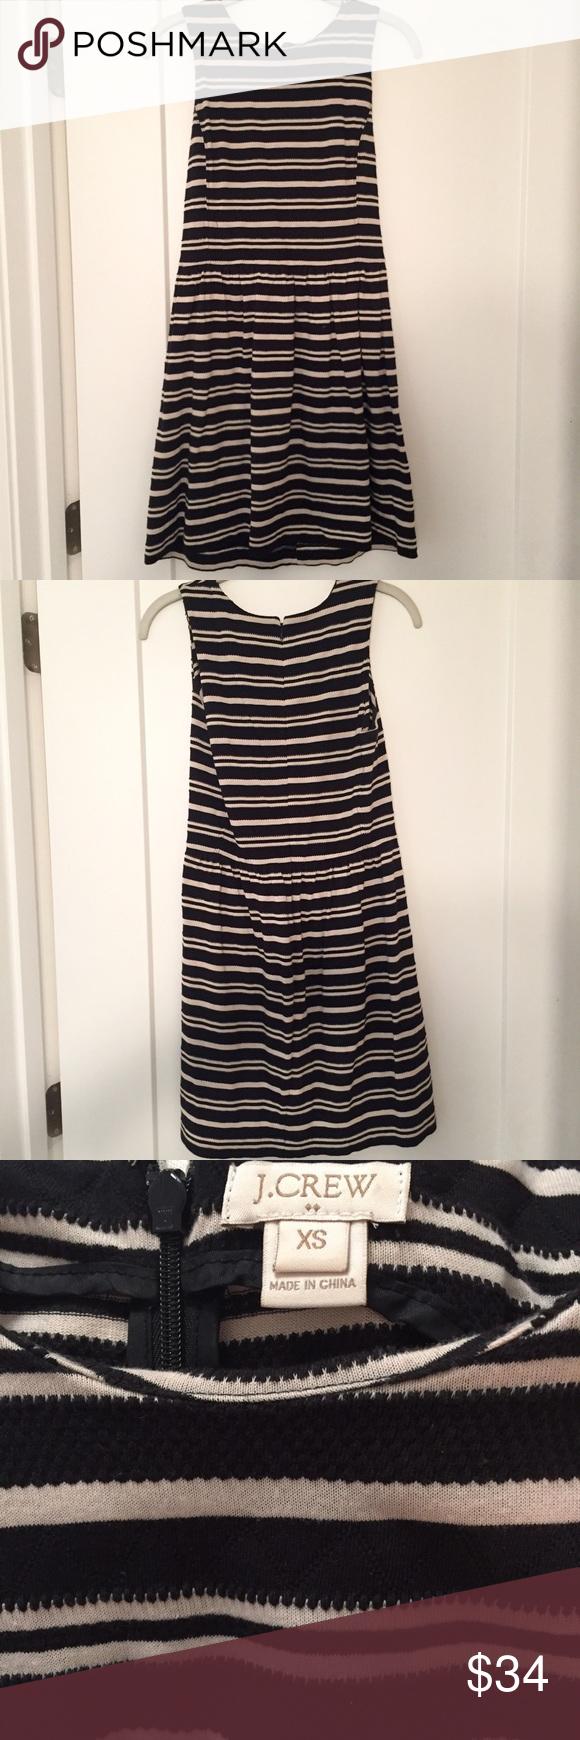 Jcrew striped tank dress Comfortable, cotton tank dress from Jcrew. Black and white striped pattern. Zipper in back. This is flattering and versatile dress-- I've worn it to dinner with sandals, and to work with a blazer. Excellent condition. Great for summer! J. Crew Dresses